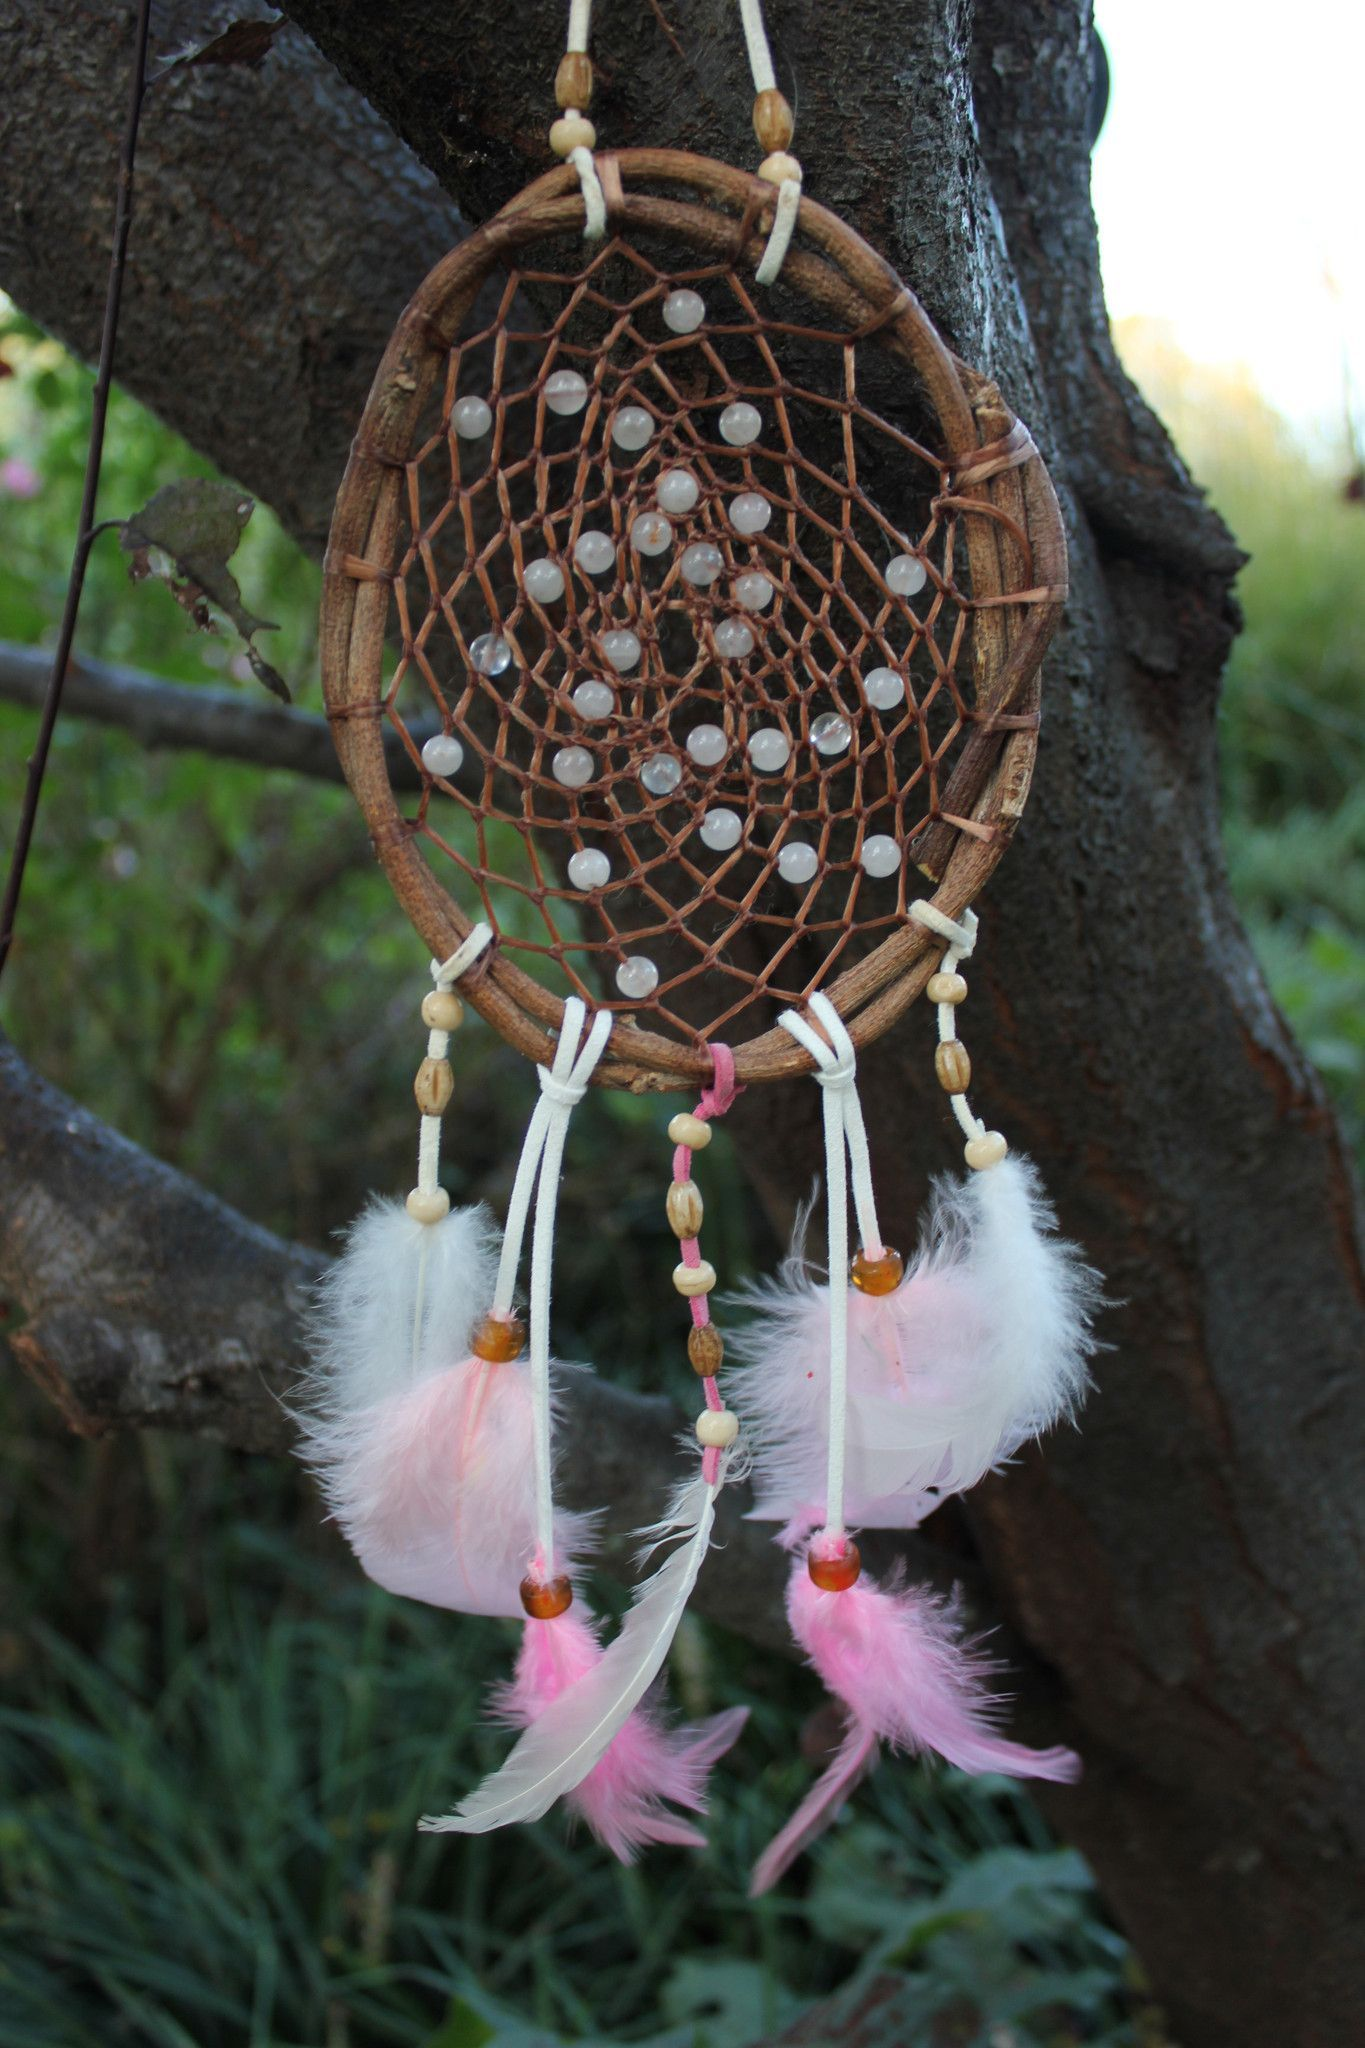 Rose Quartz, Wisteria Vine Dream Catcher, 5 inch, Leather, Sinew, Pink and White Rooster Feathers